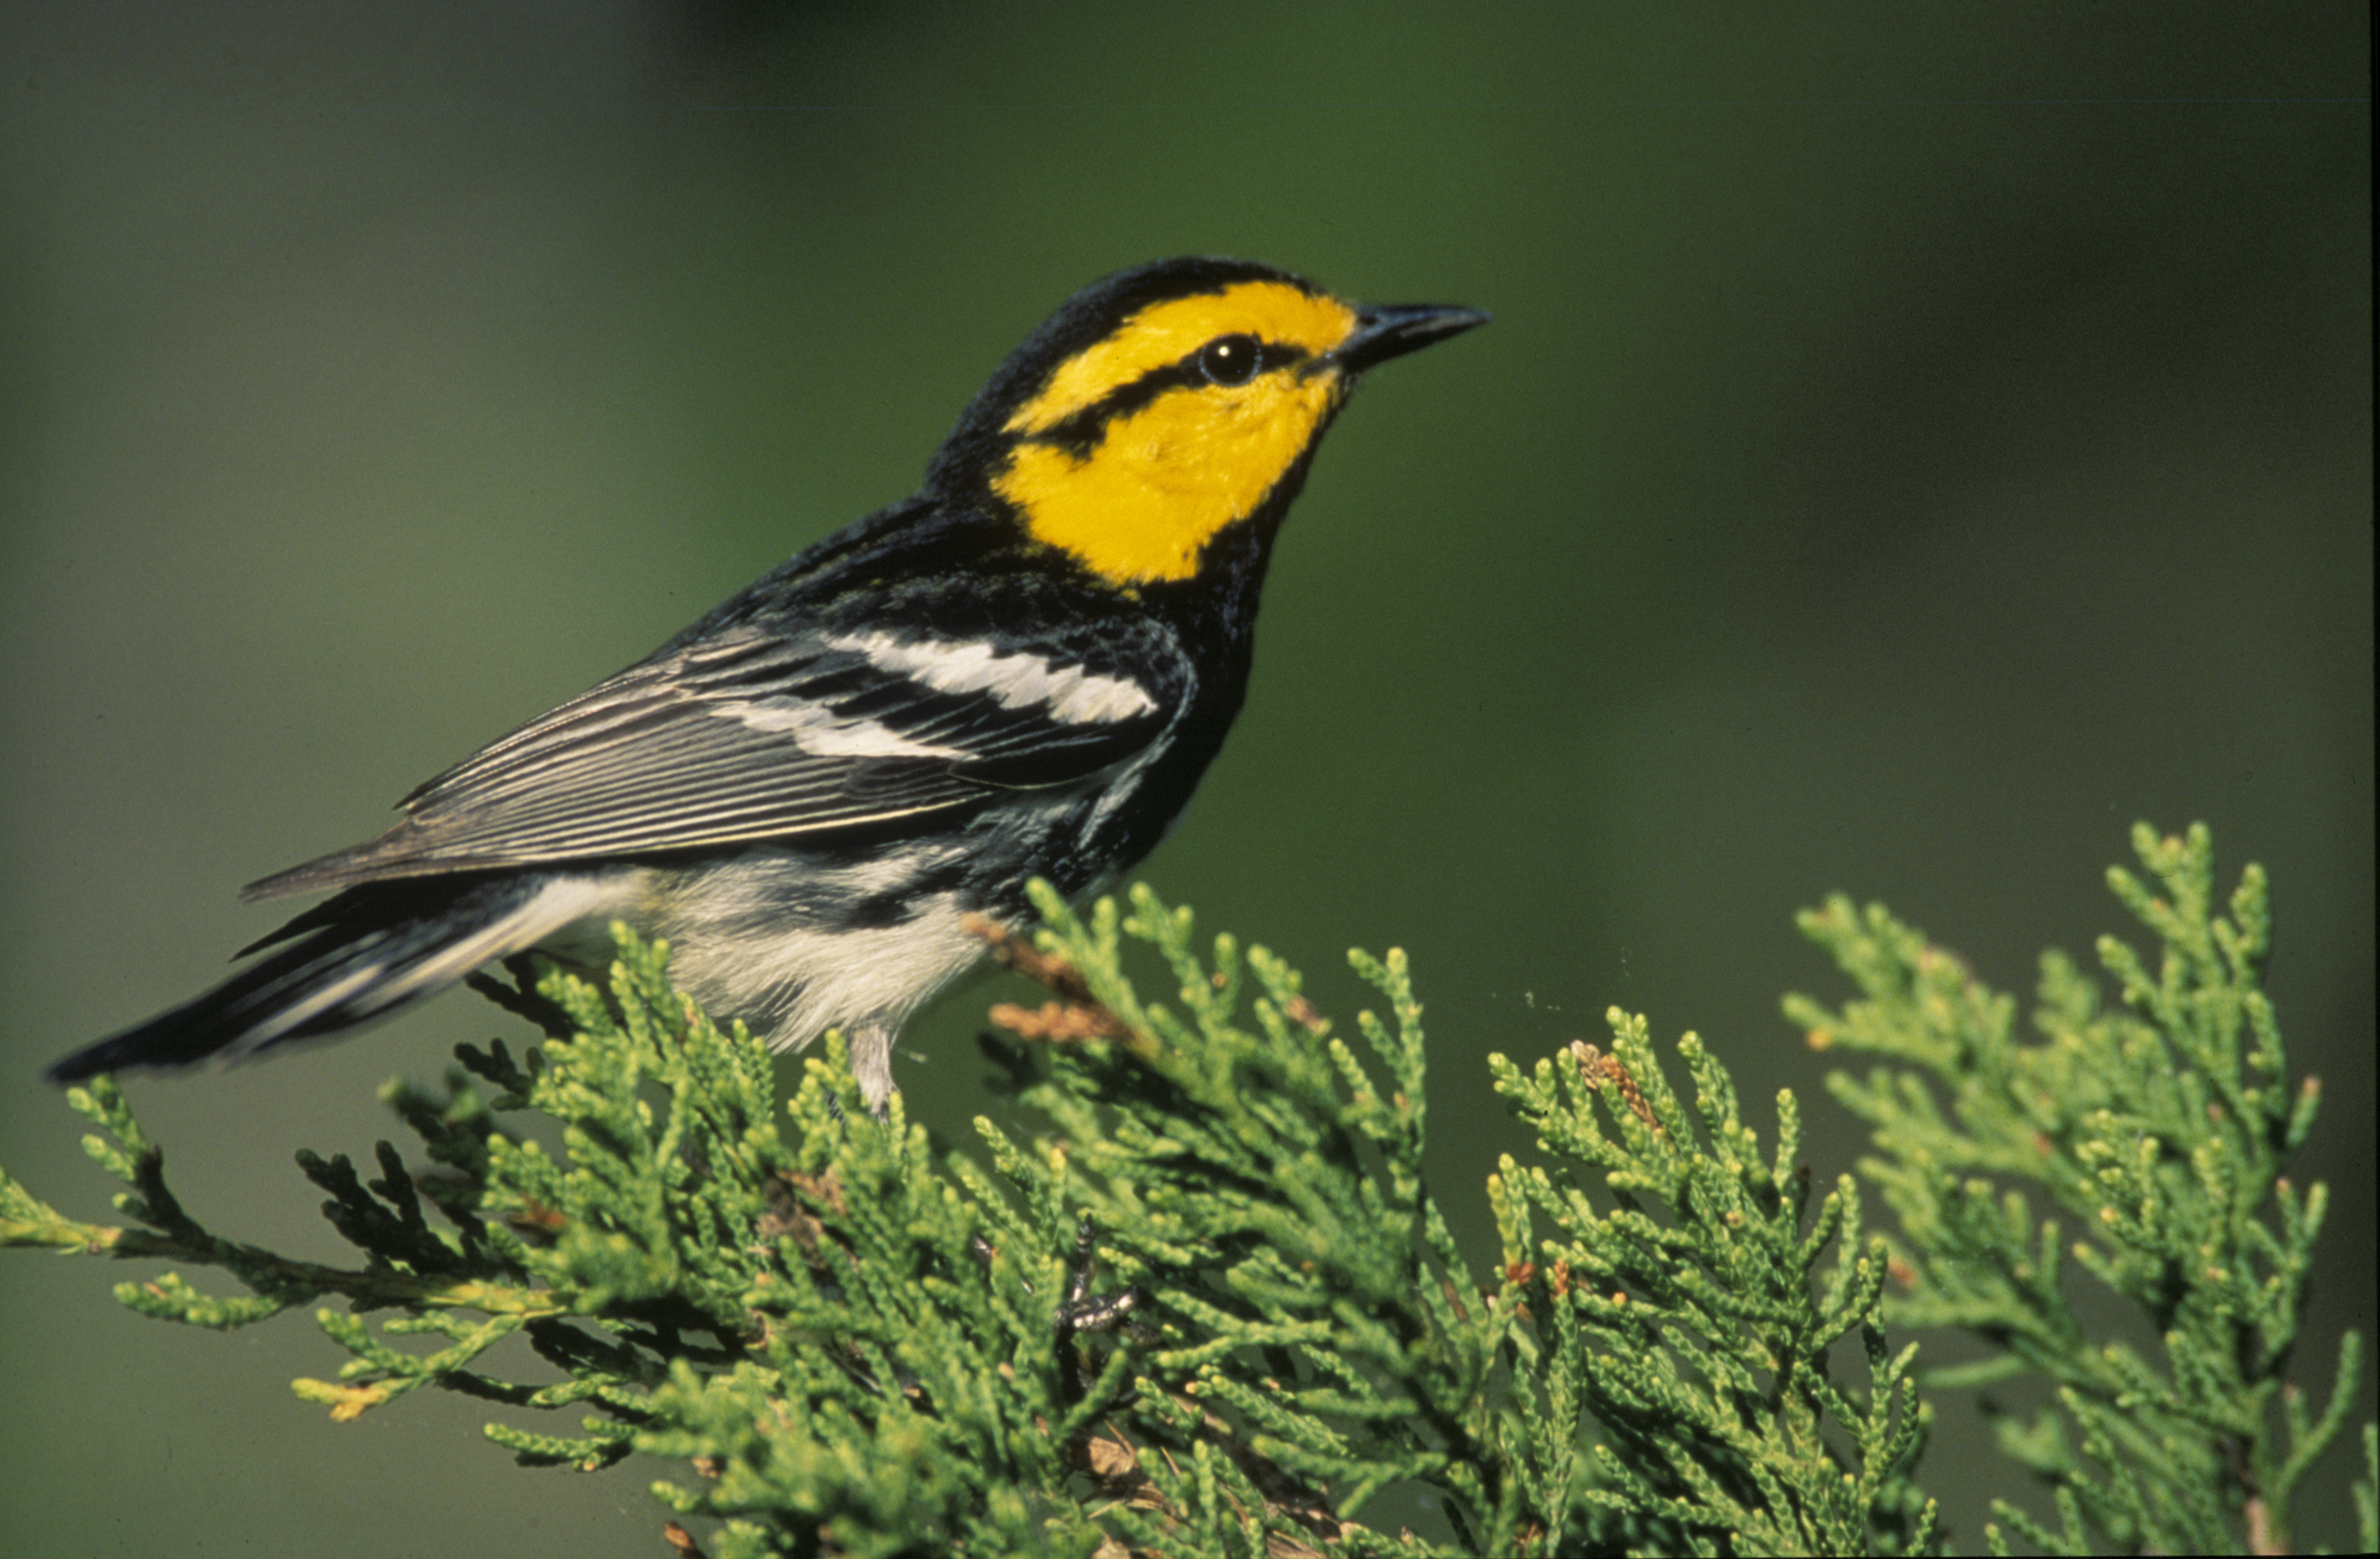 Golden-cheeked warbler to remain on endangered list